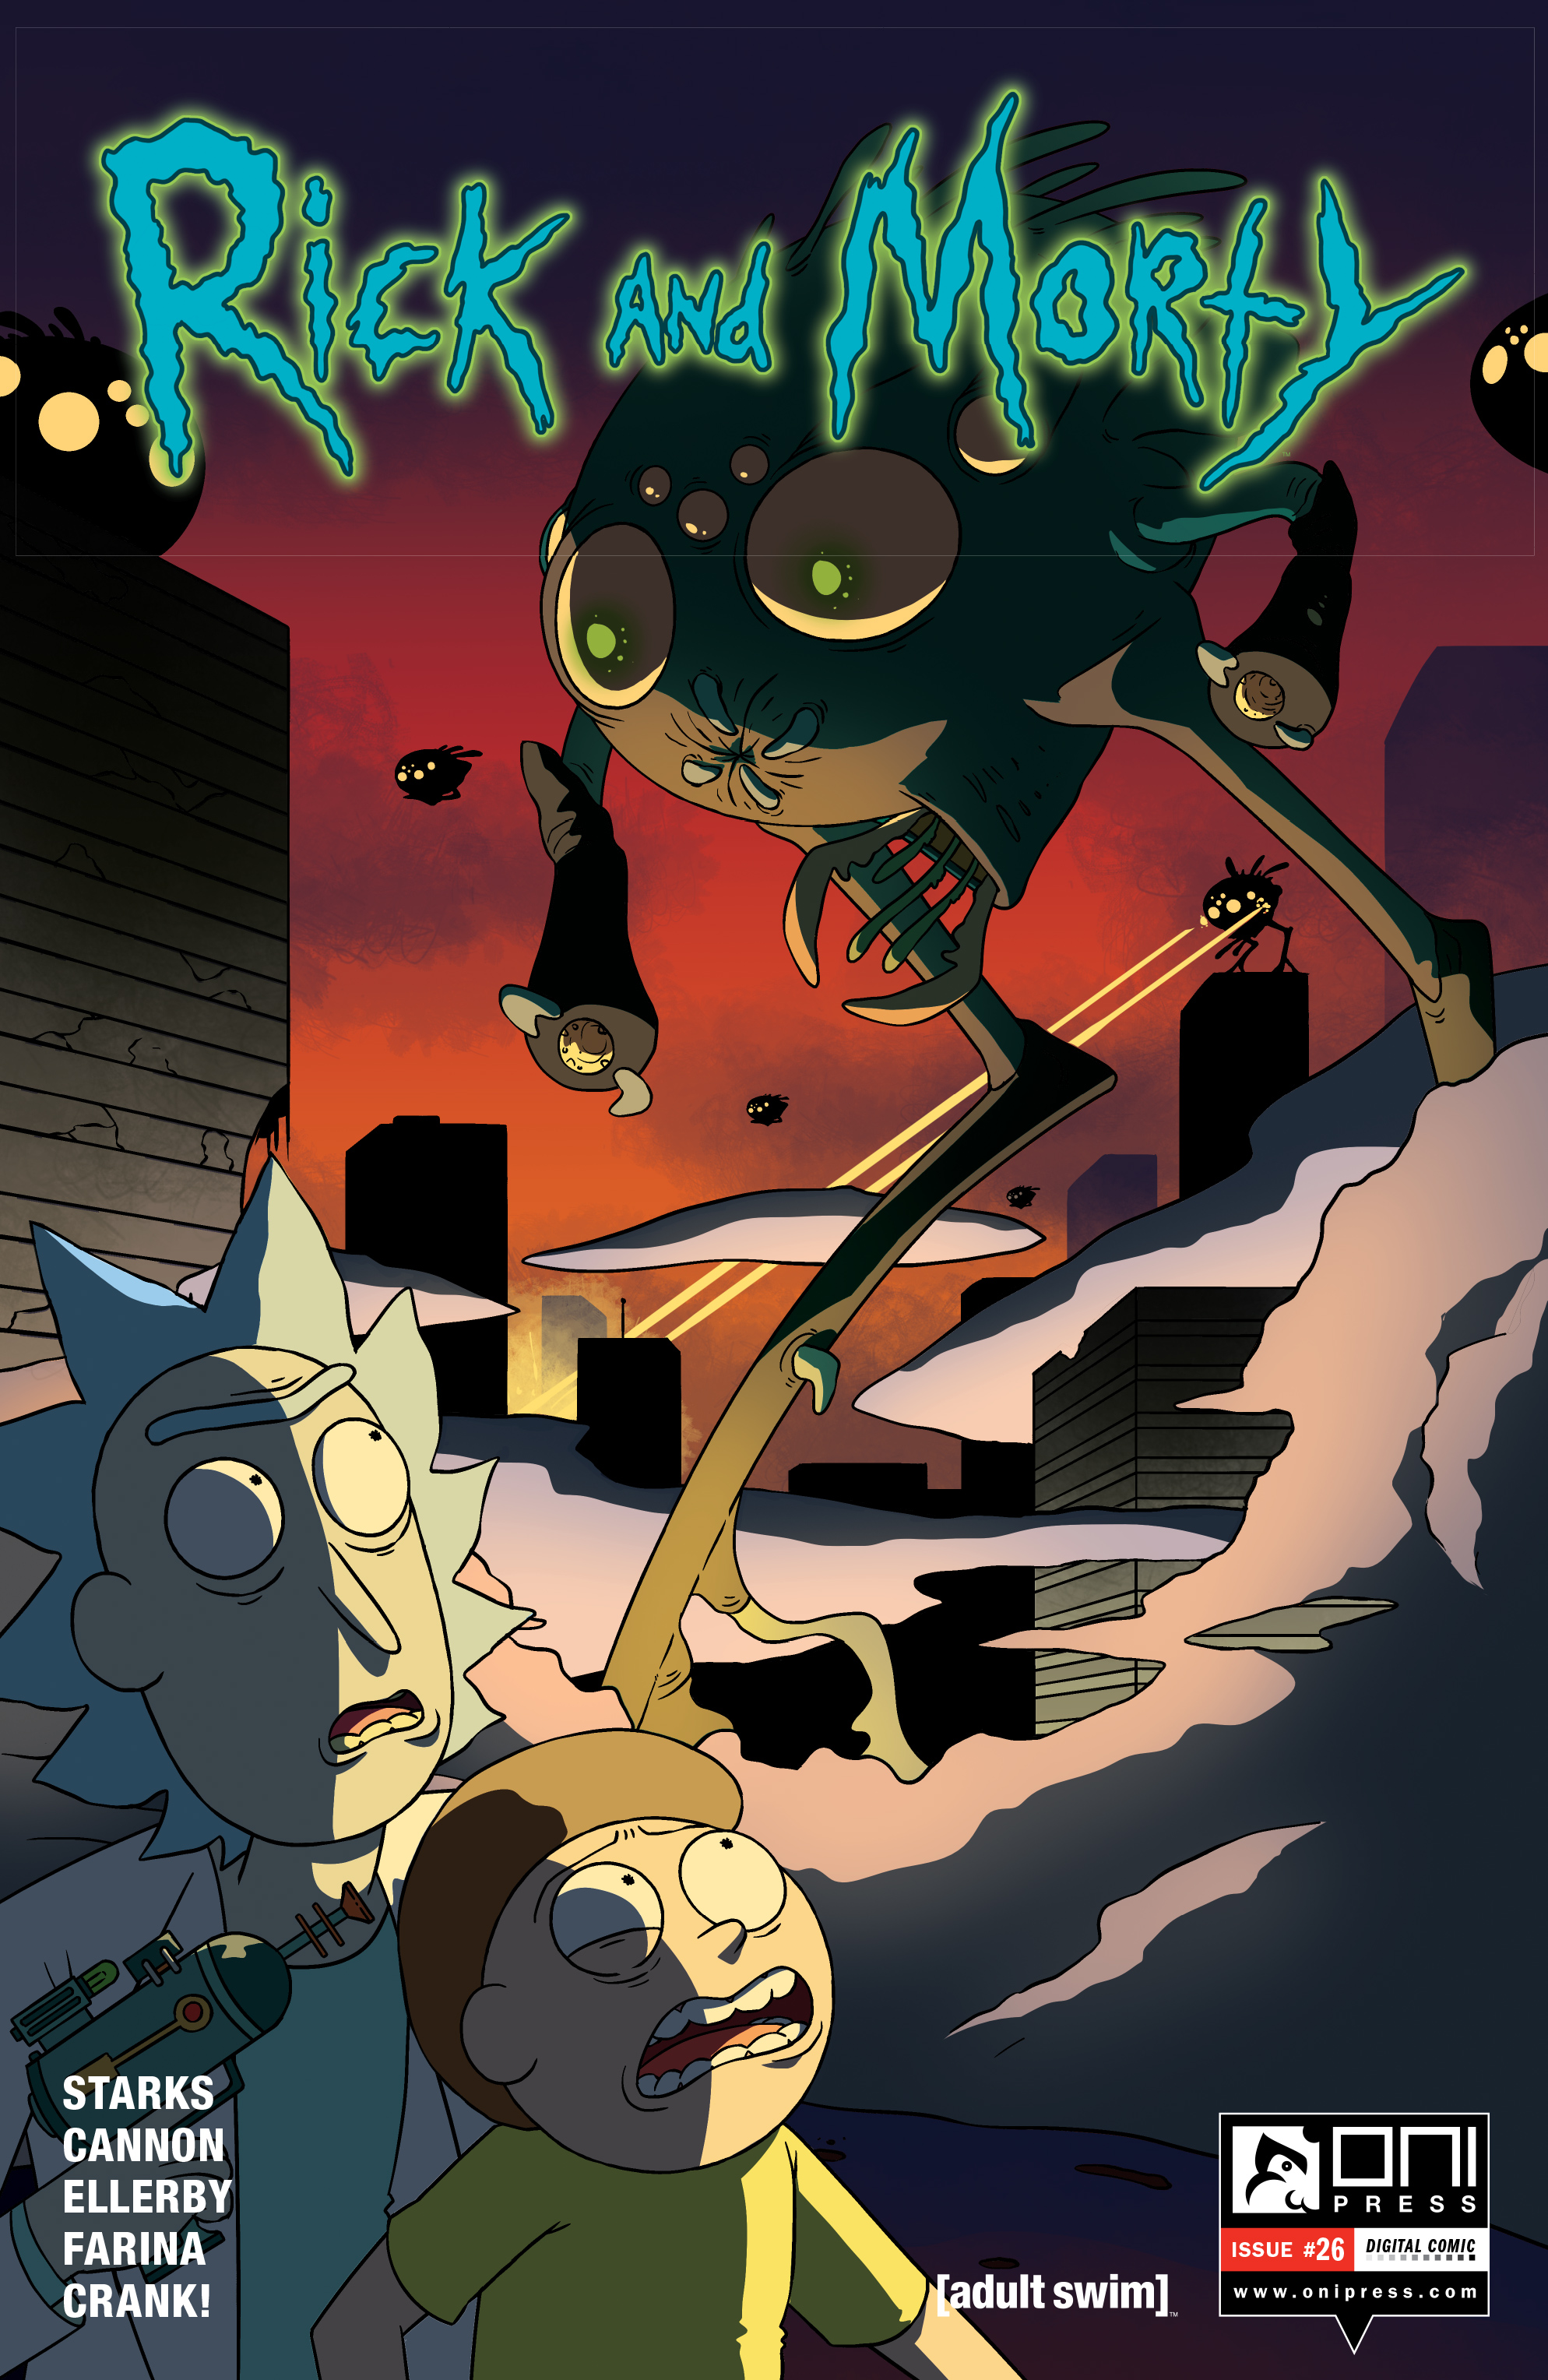 Read online Rick and Morty comic -  Issue #26 - 1